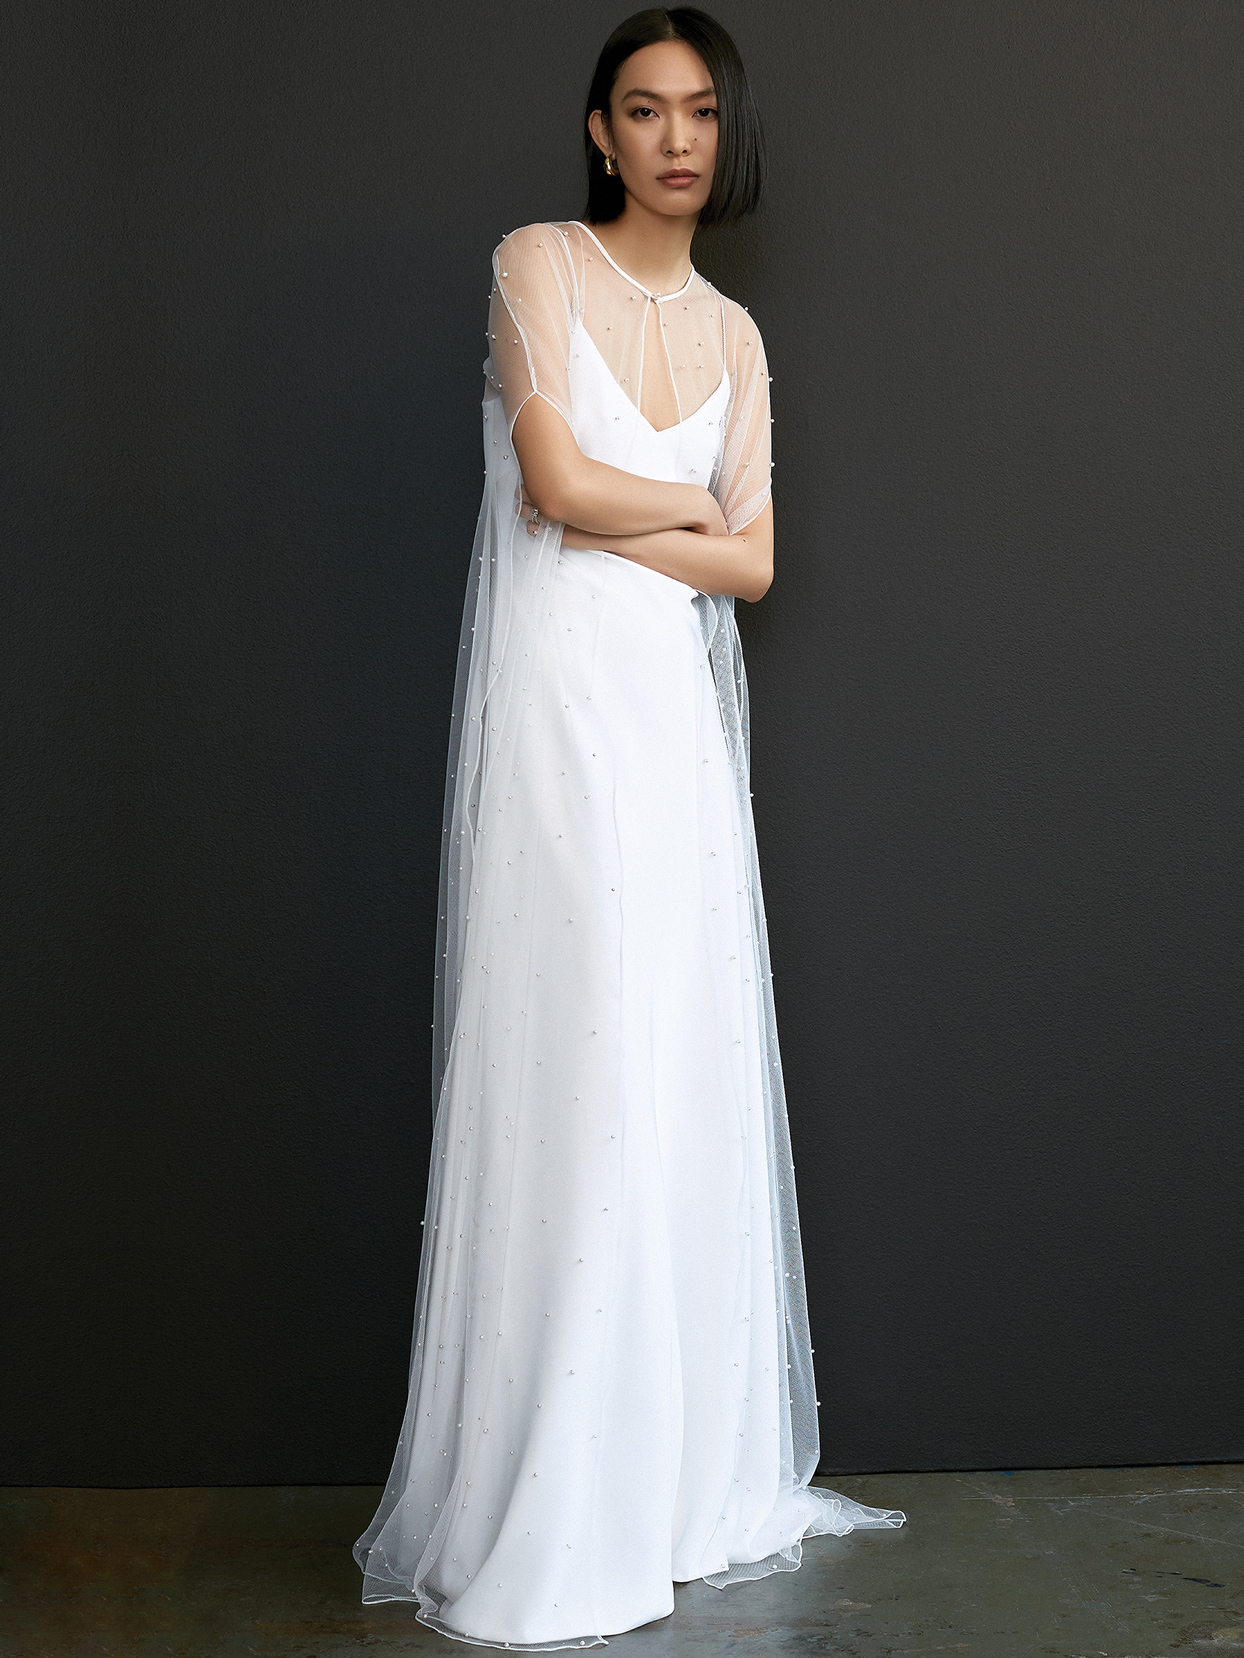 savannah miller sheer short sleeve beaded cover wedding dress spring 2021